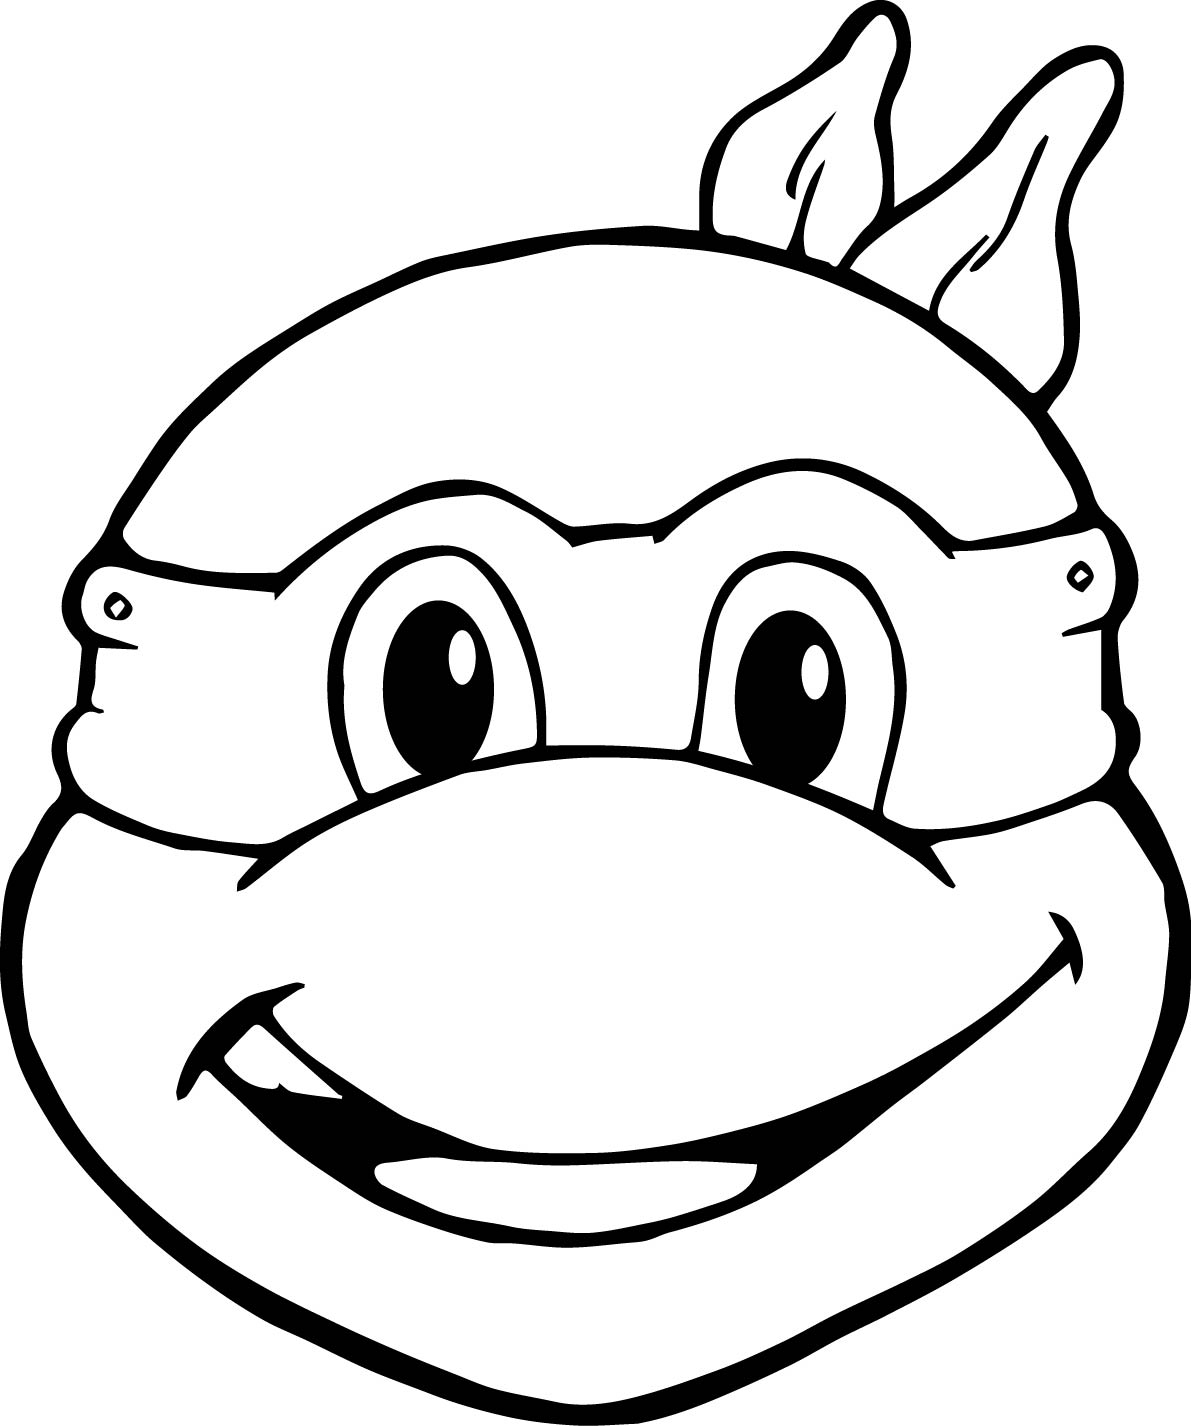 tortoise mask template - ninja turtle face drawing at free for